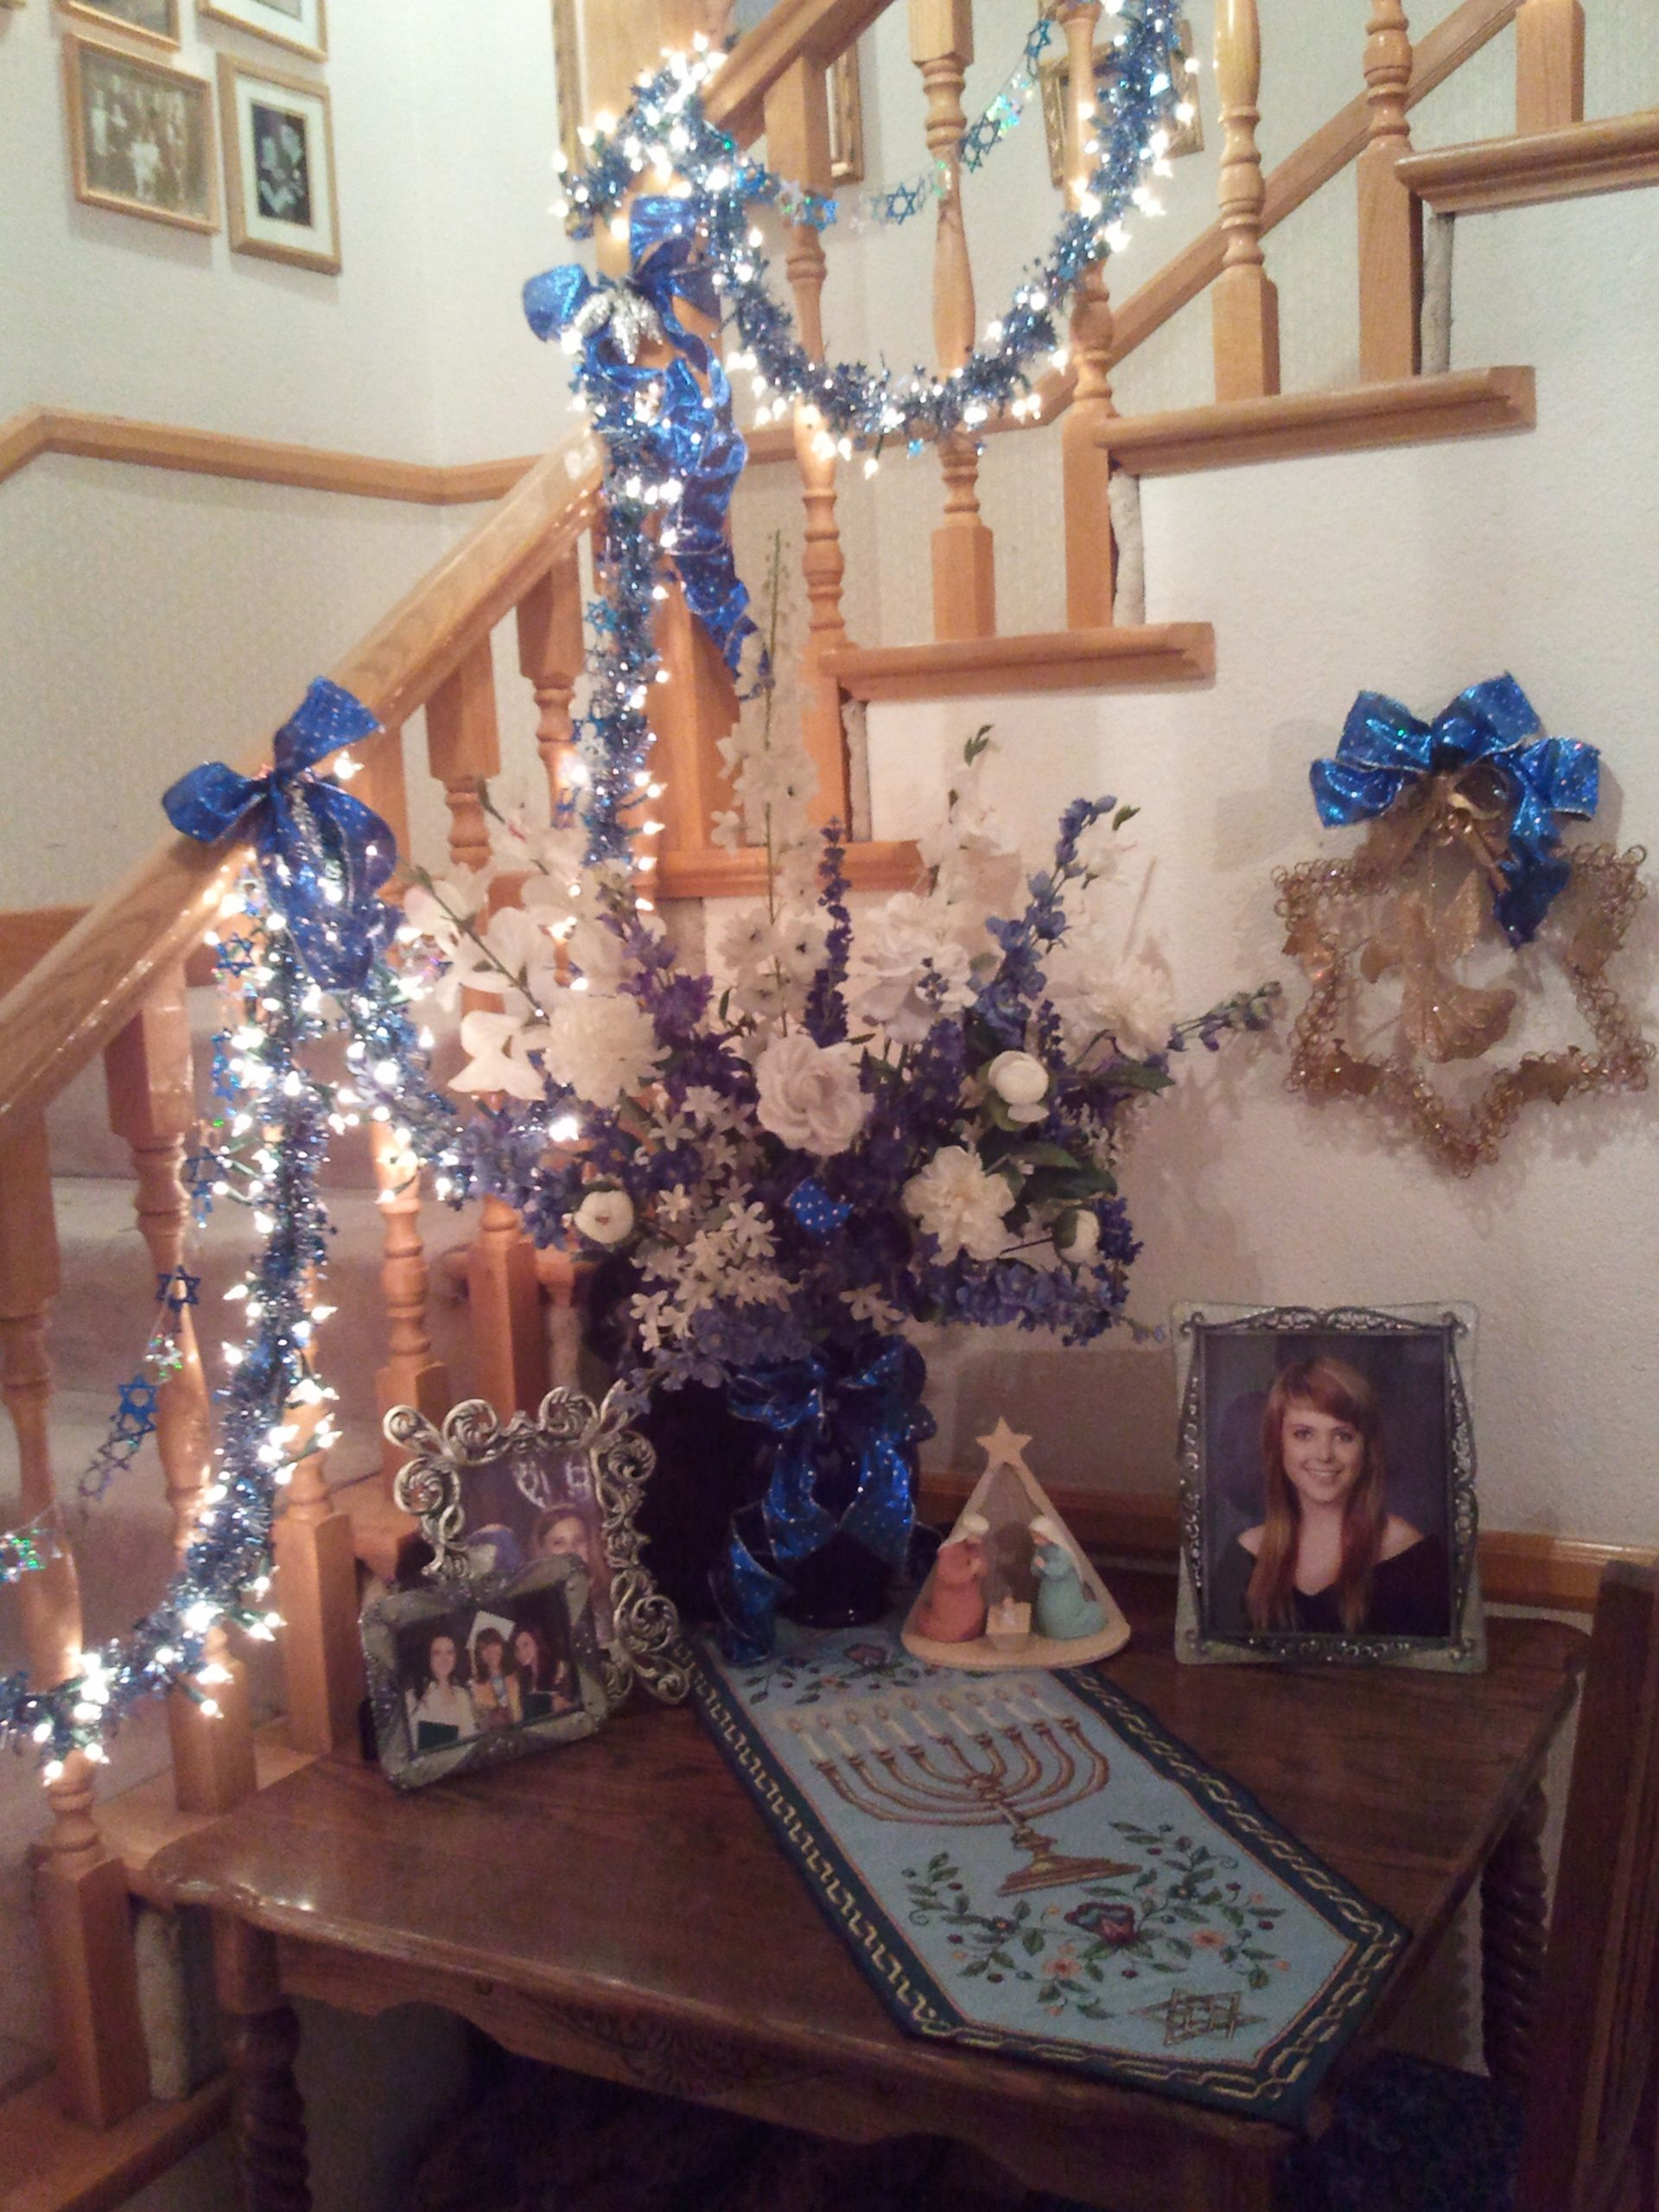 Hannukah Decorations In The Hallway